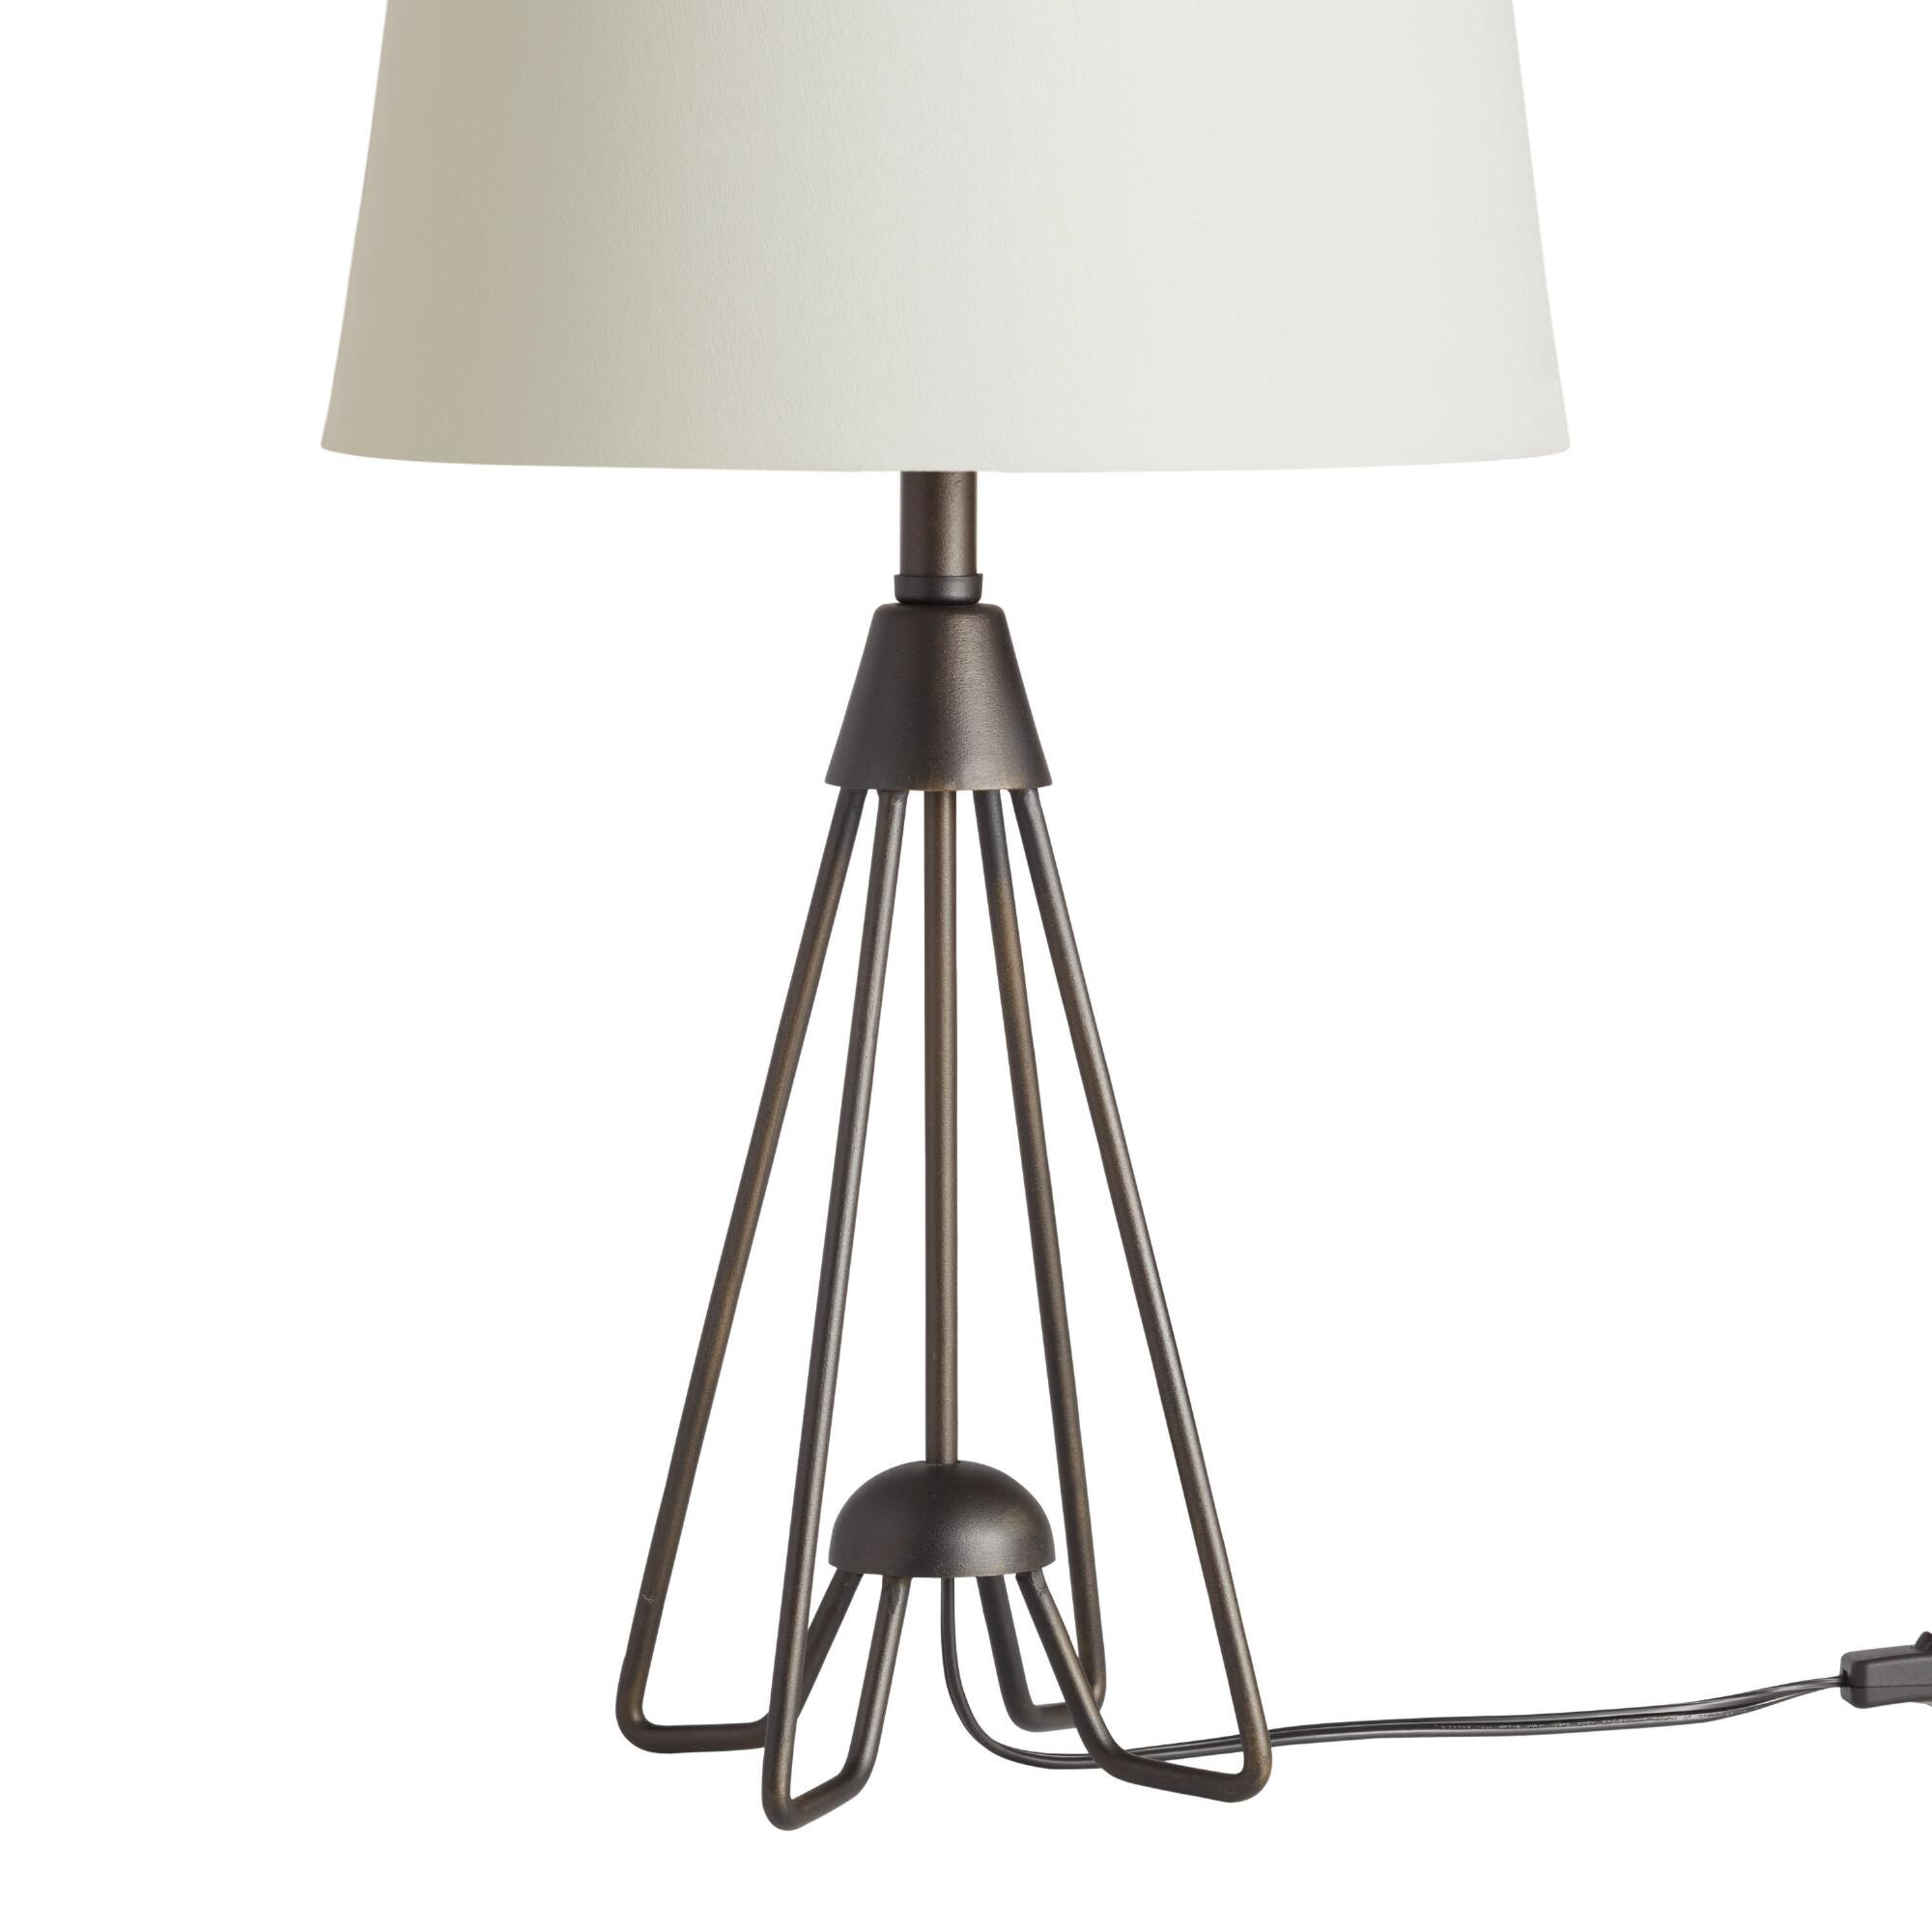 Black and brass telescoping table lamp base world market iron hairpin kent table lamp base geotapseo Image collections